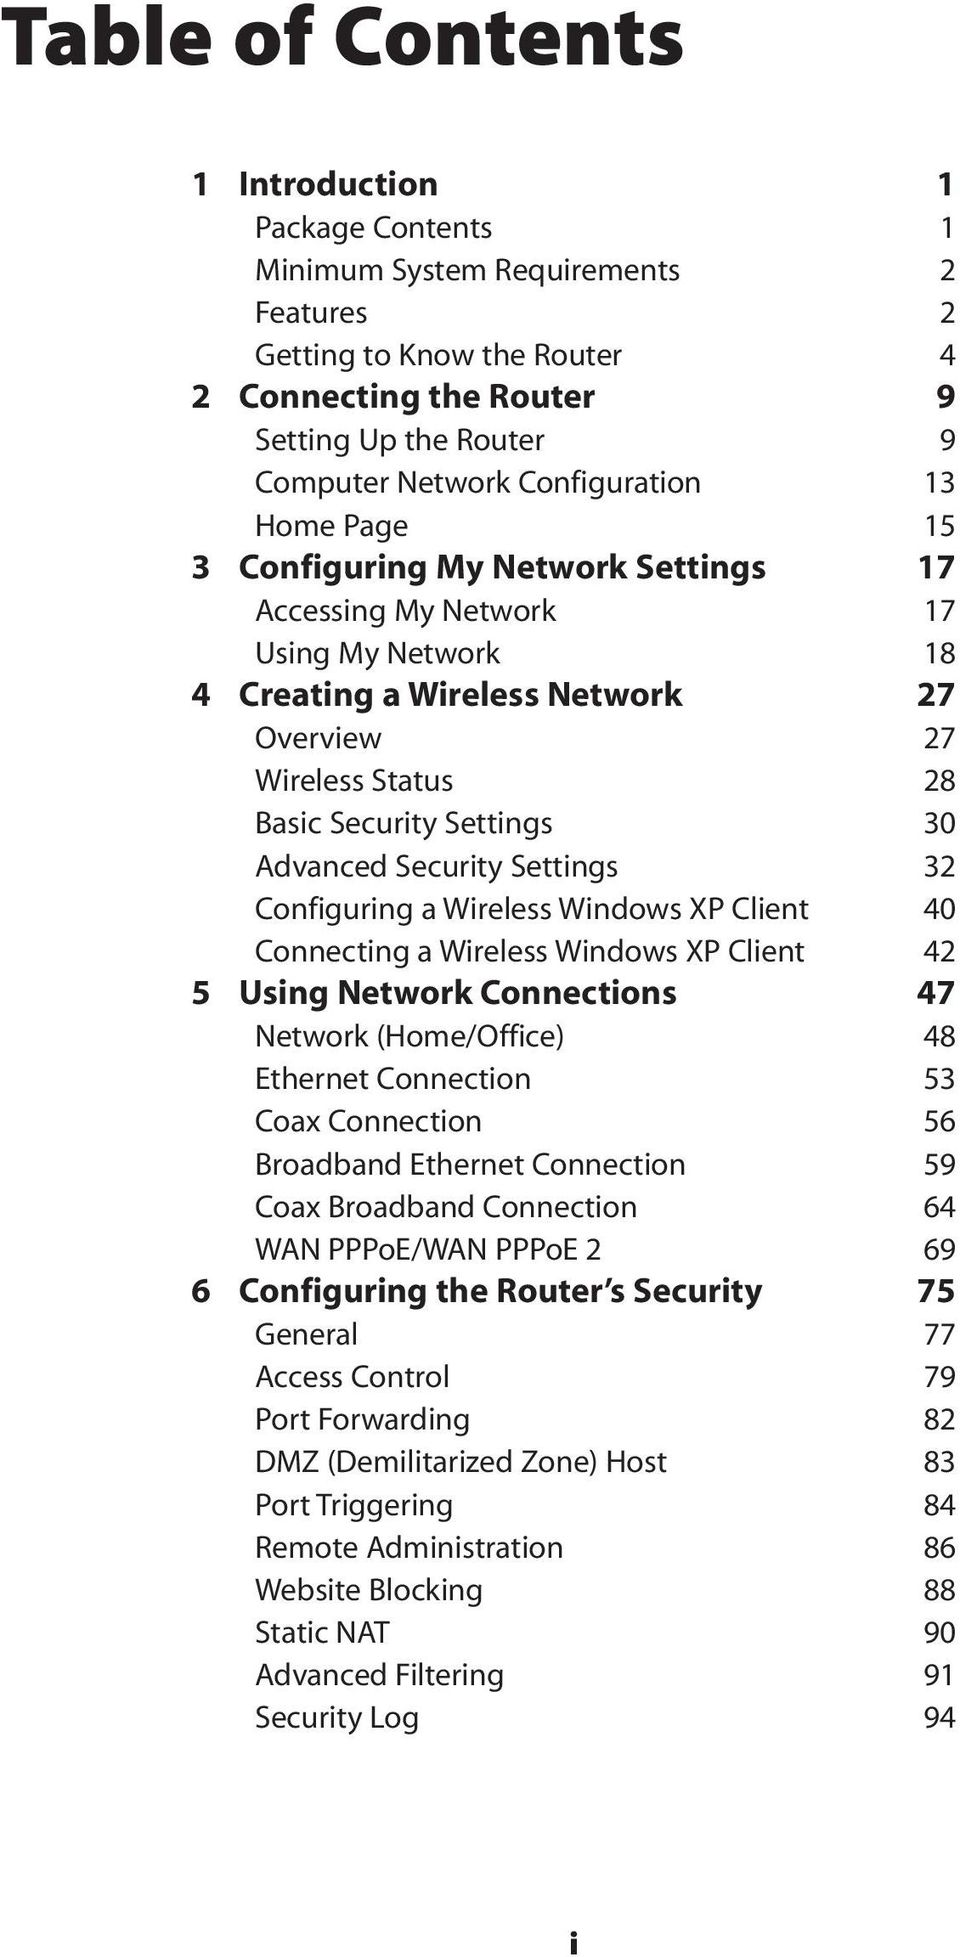 30 Advanced Security Settings 32 Configuring a Wireless Windows XP Client 40 Connecting a Wireless Windows XP Client 42 5 Using Network Connections 47 Network (Home/Office) 48 Ethernet Connection 53